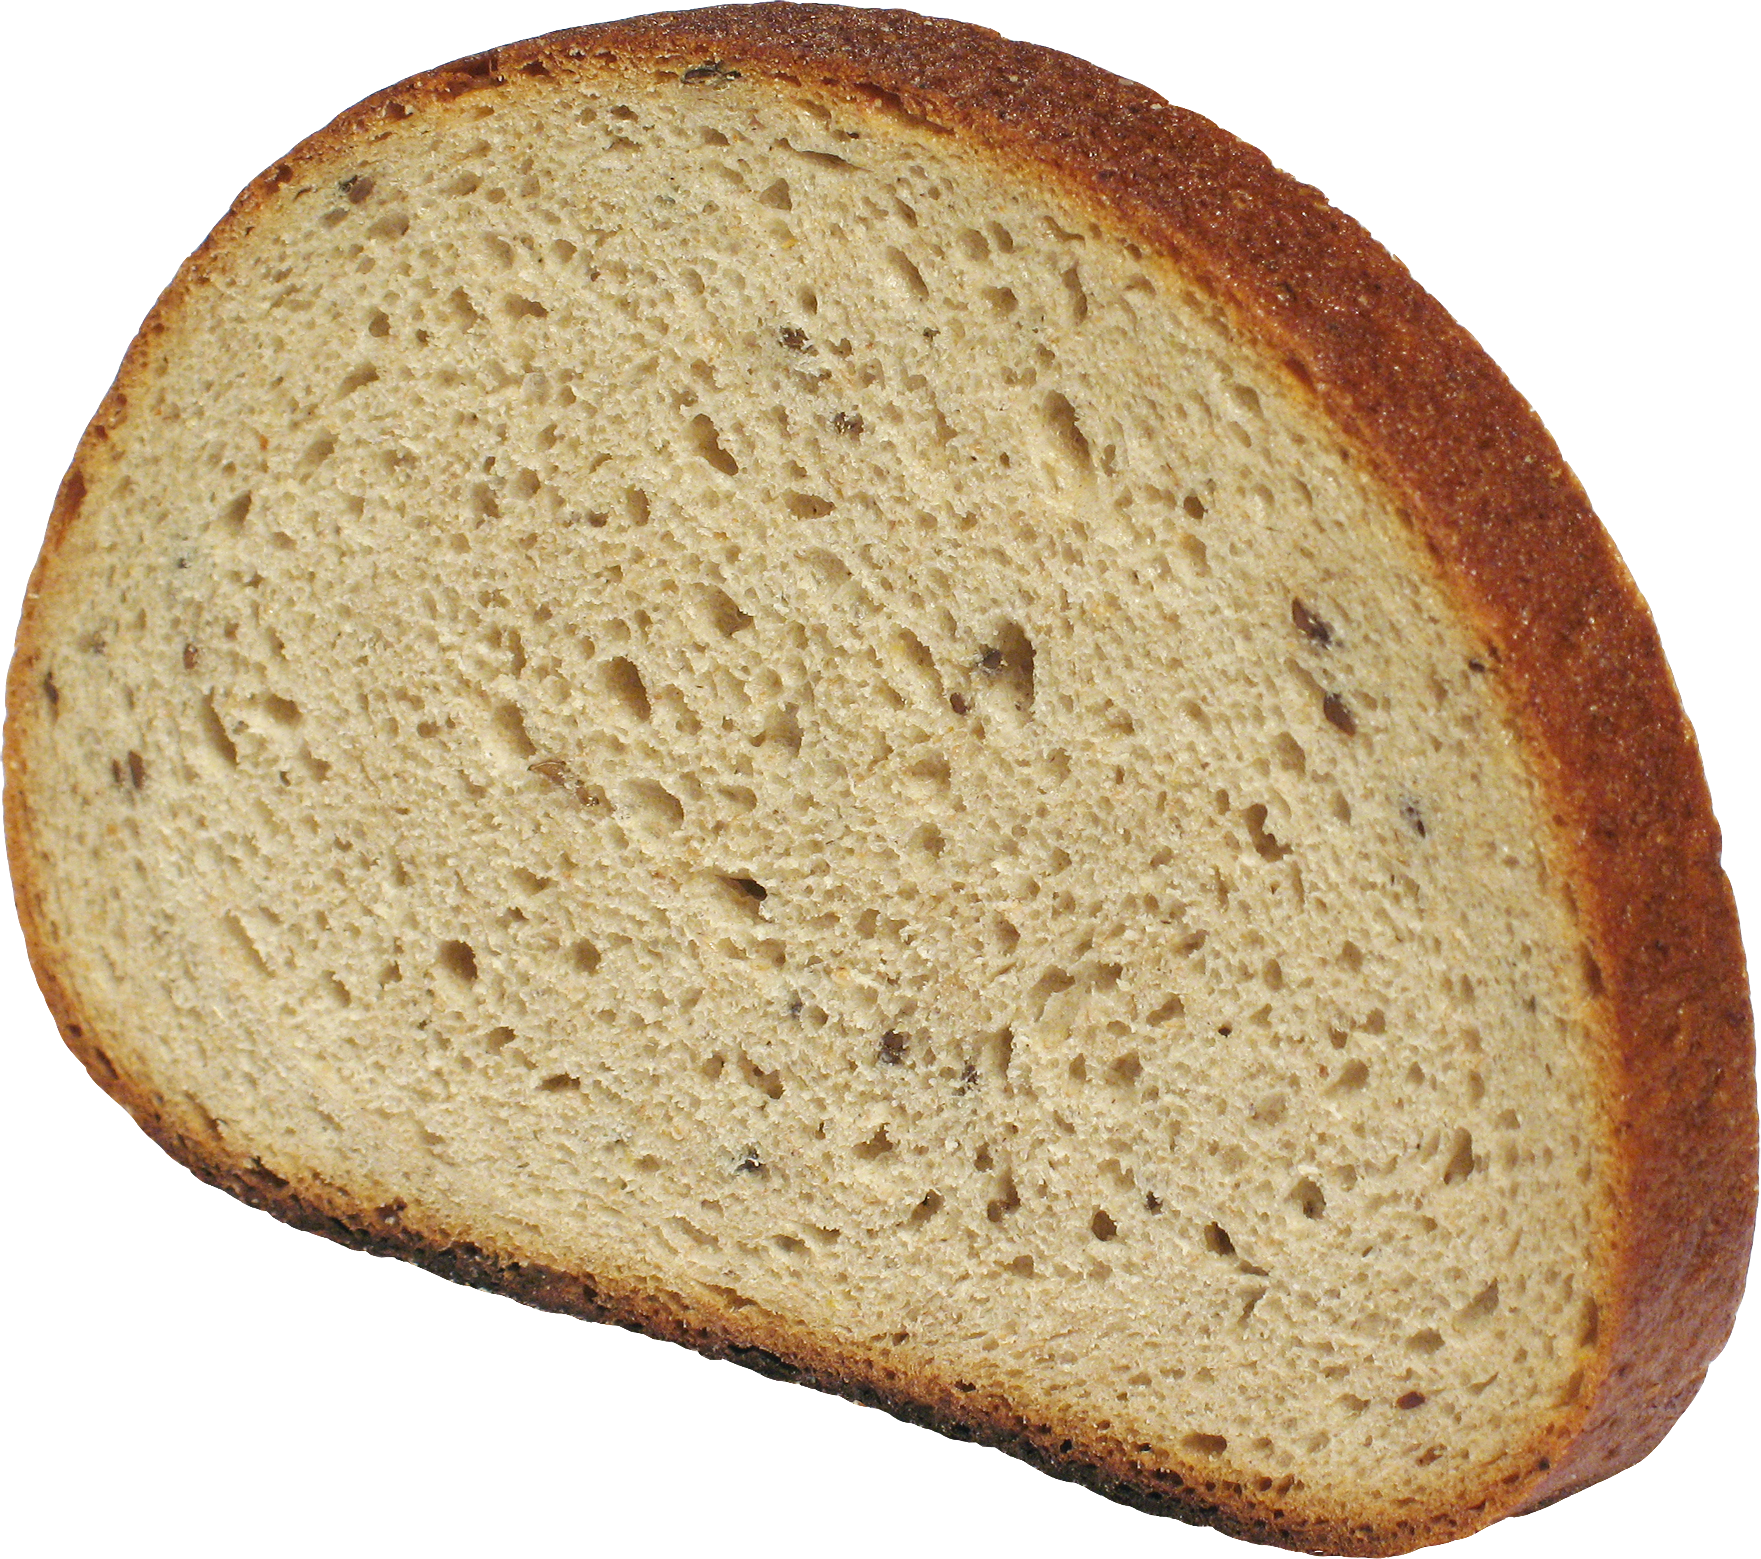 Clipart bread slice bread. Of png image purepng